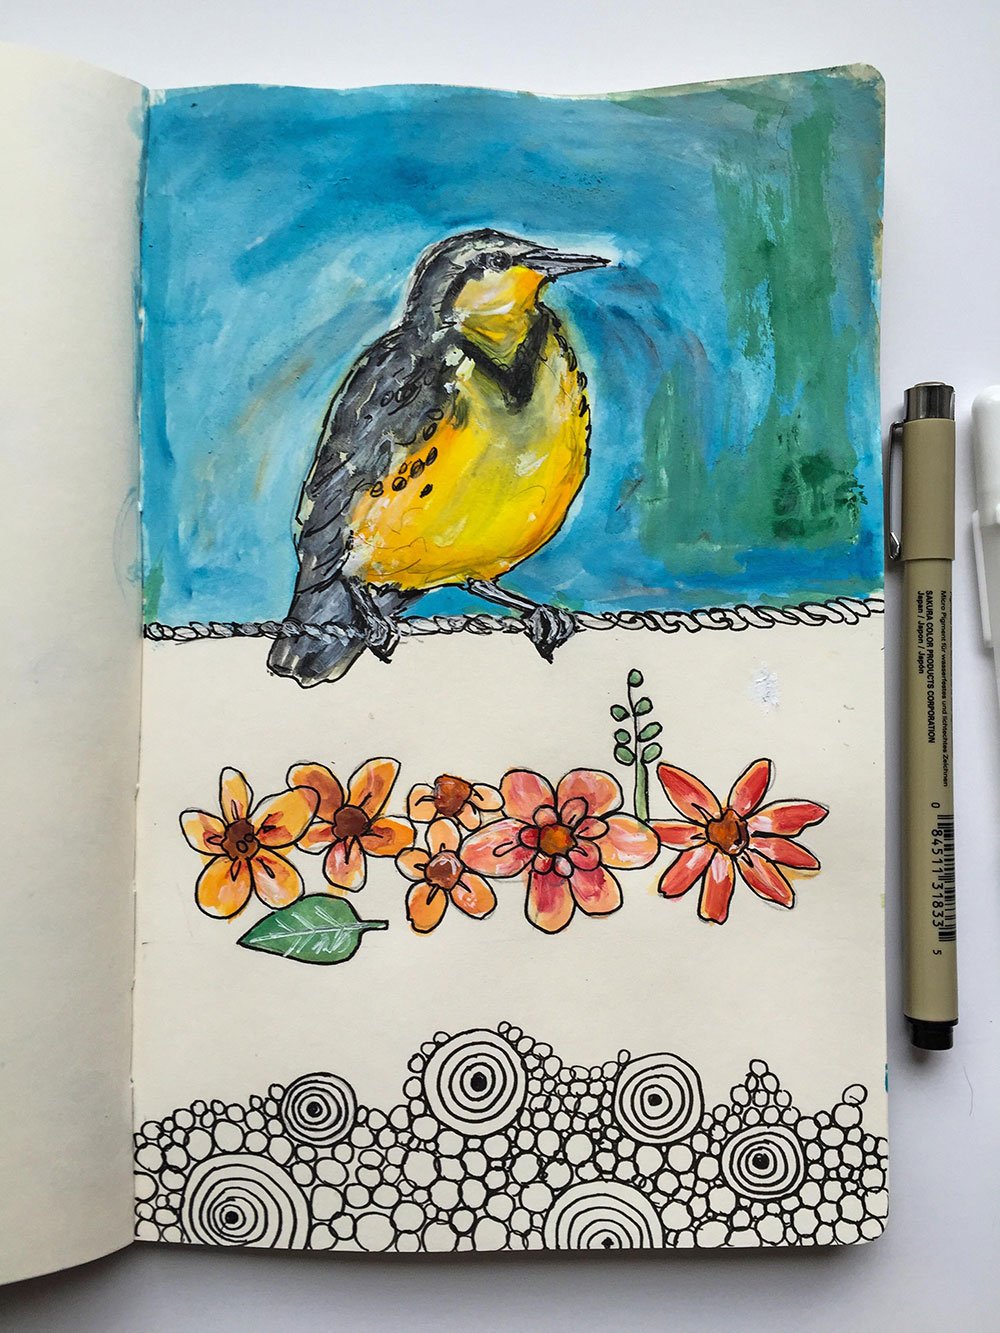 Meadowlark and Doodles